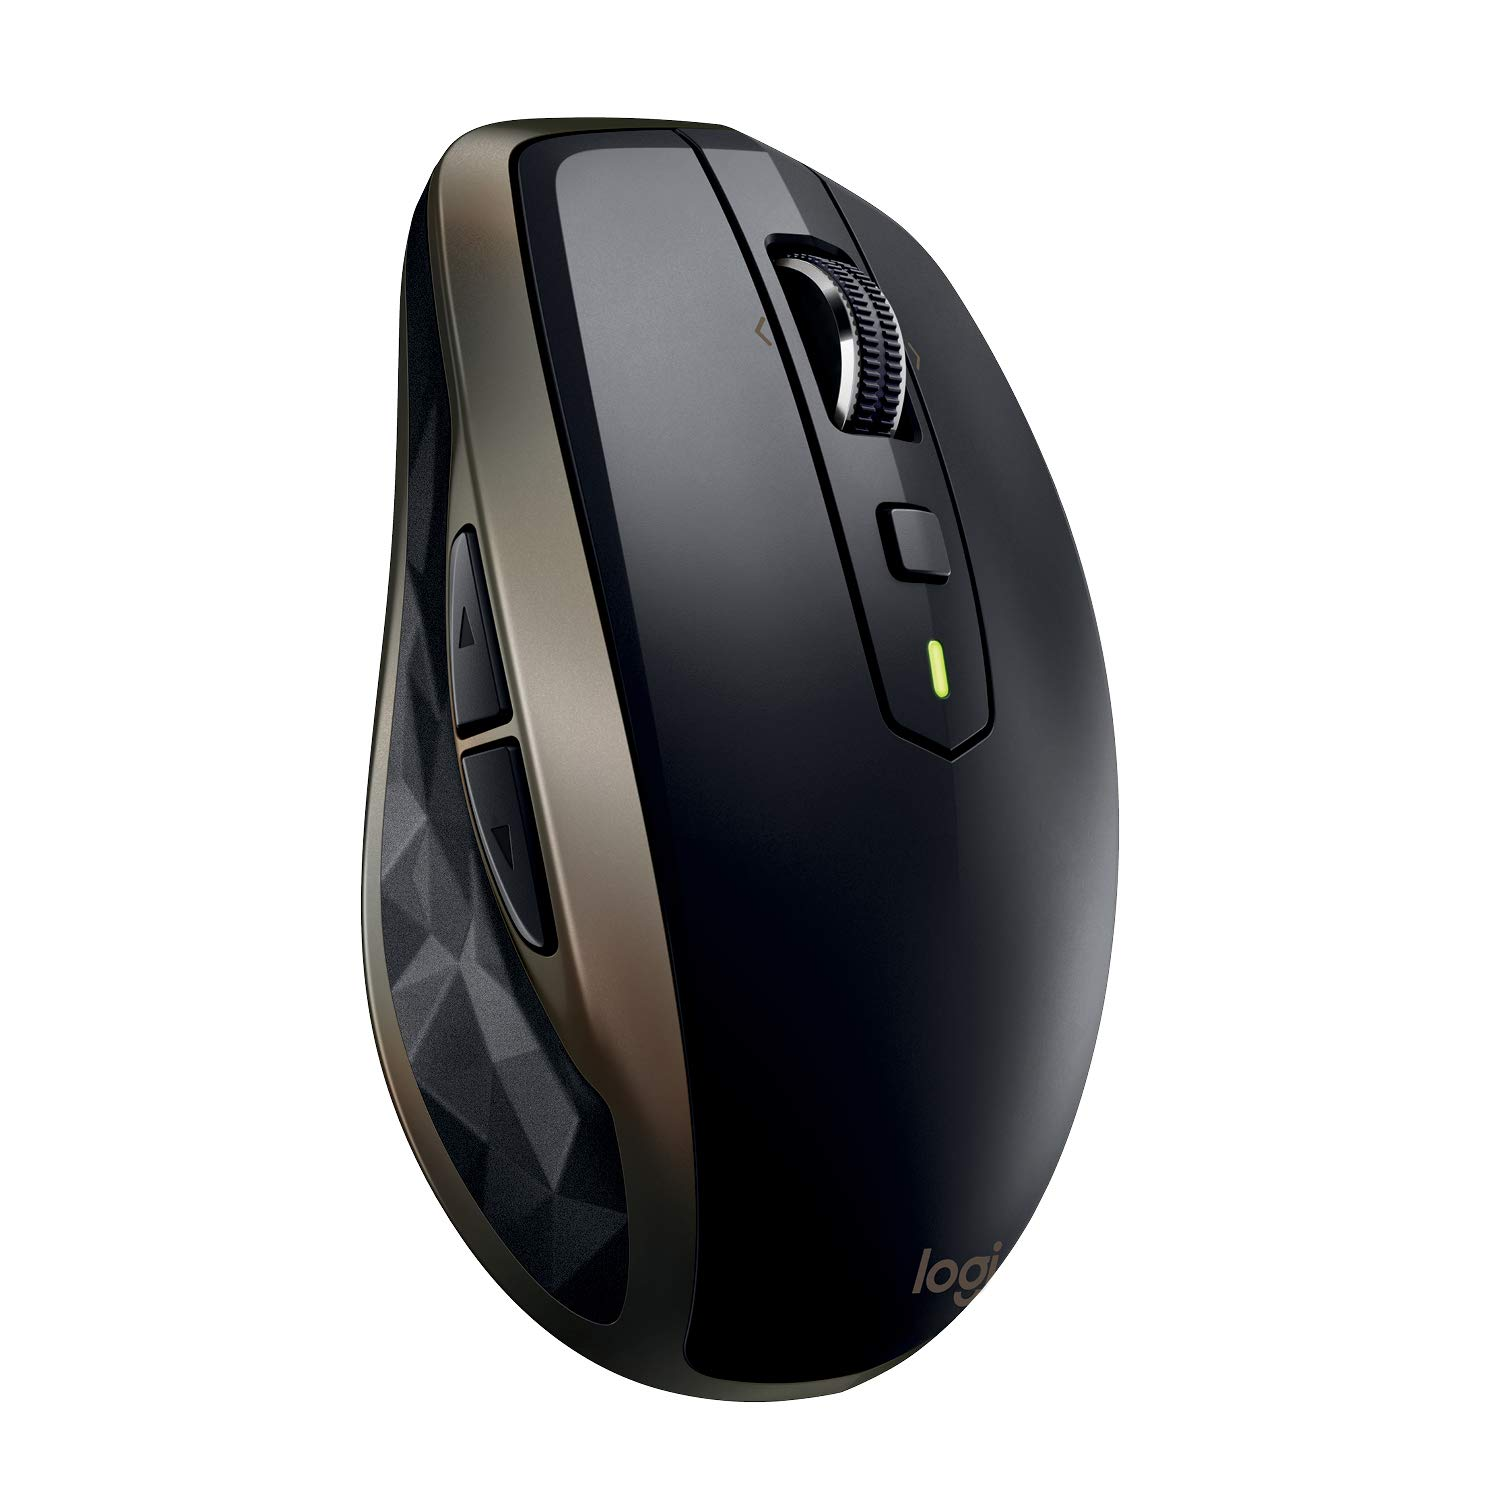 Logitech MX Anywhere 2 AMZ Wireless Bluetooth Mouse for Windows and Mac @Amazon